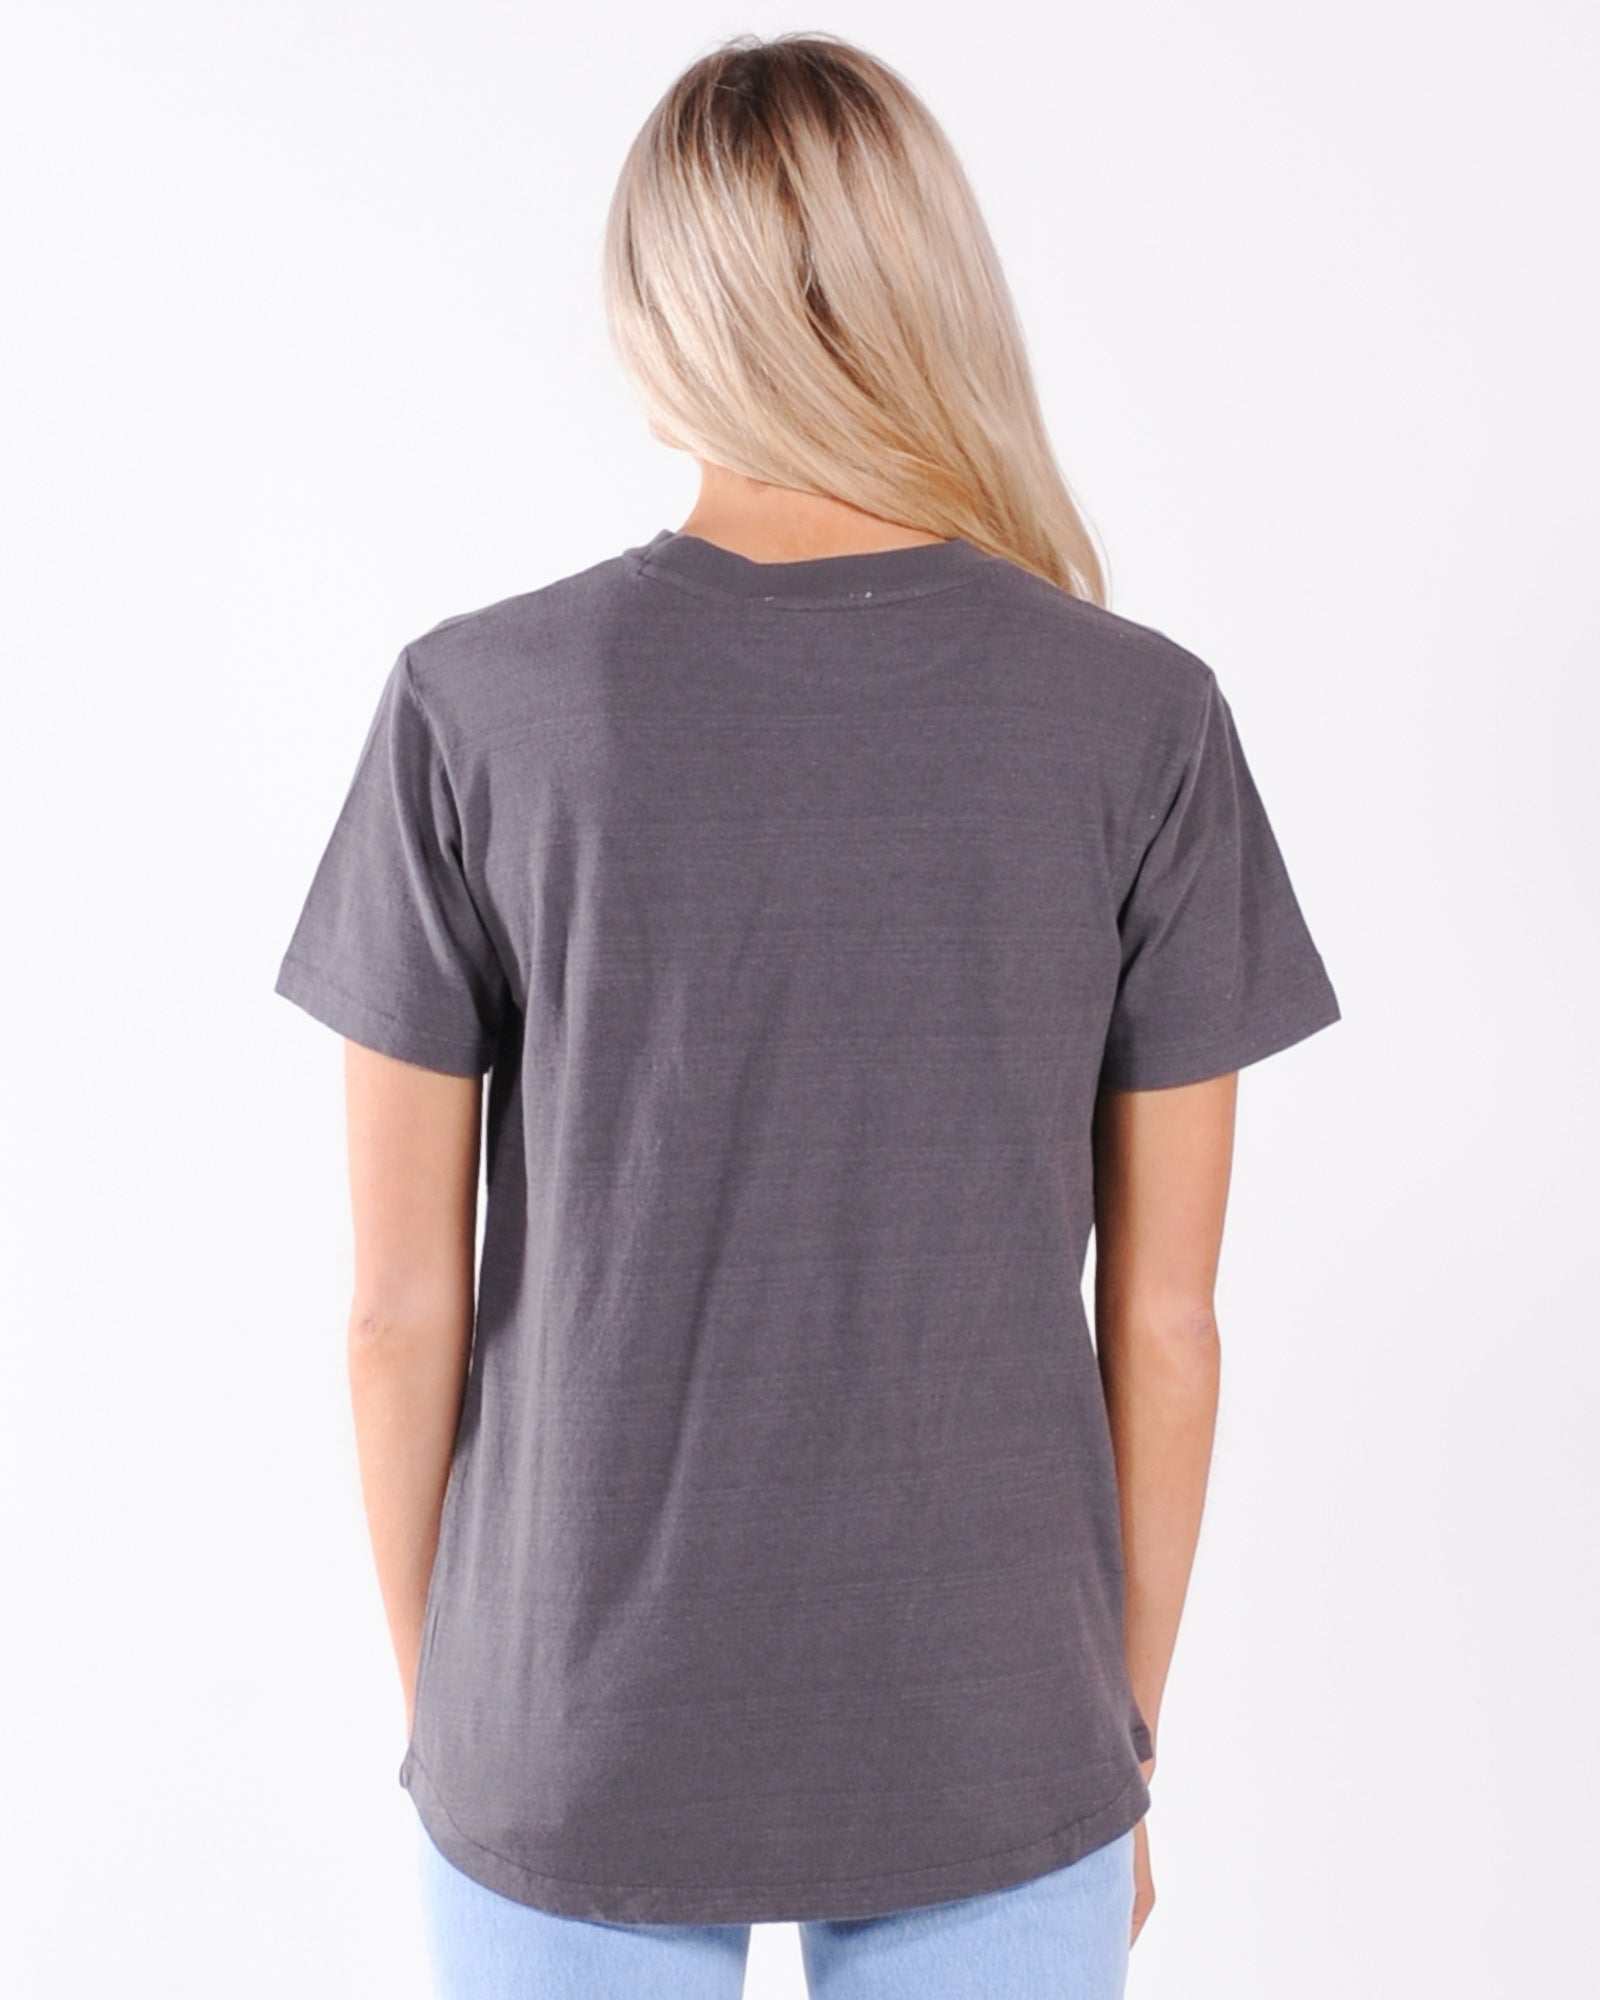 Jorge Ria Animal Tee - Washed Black